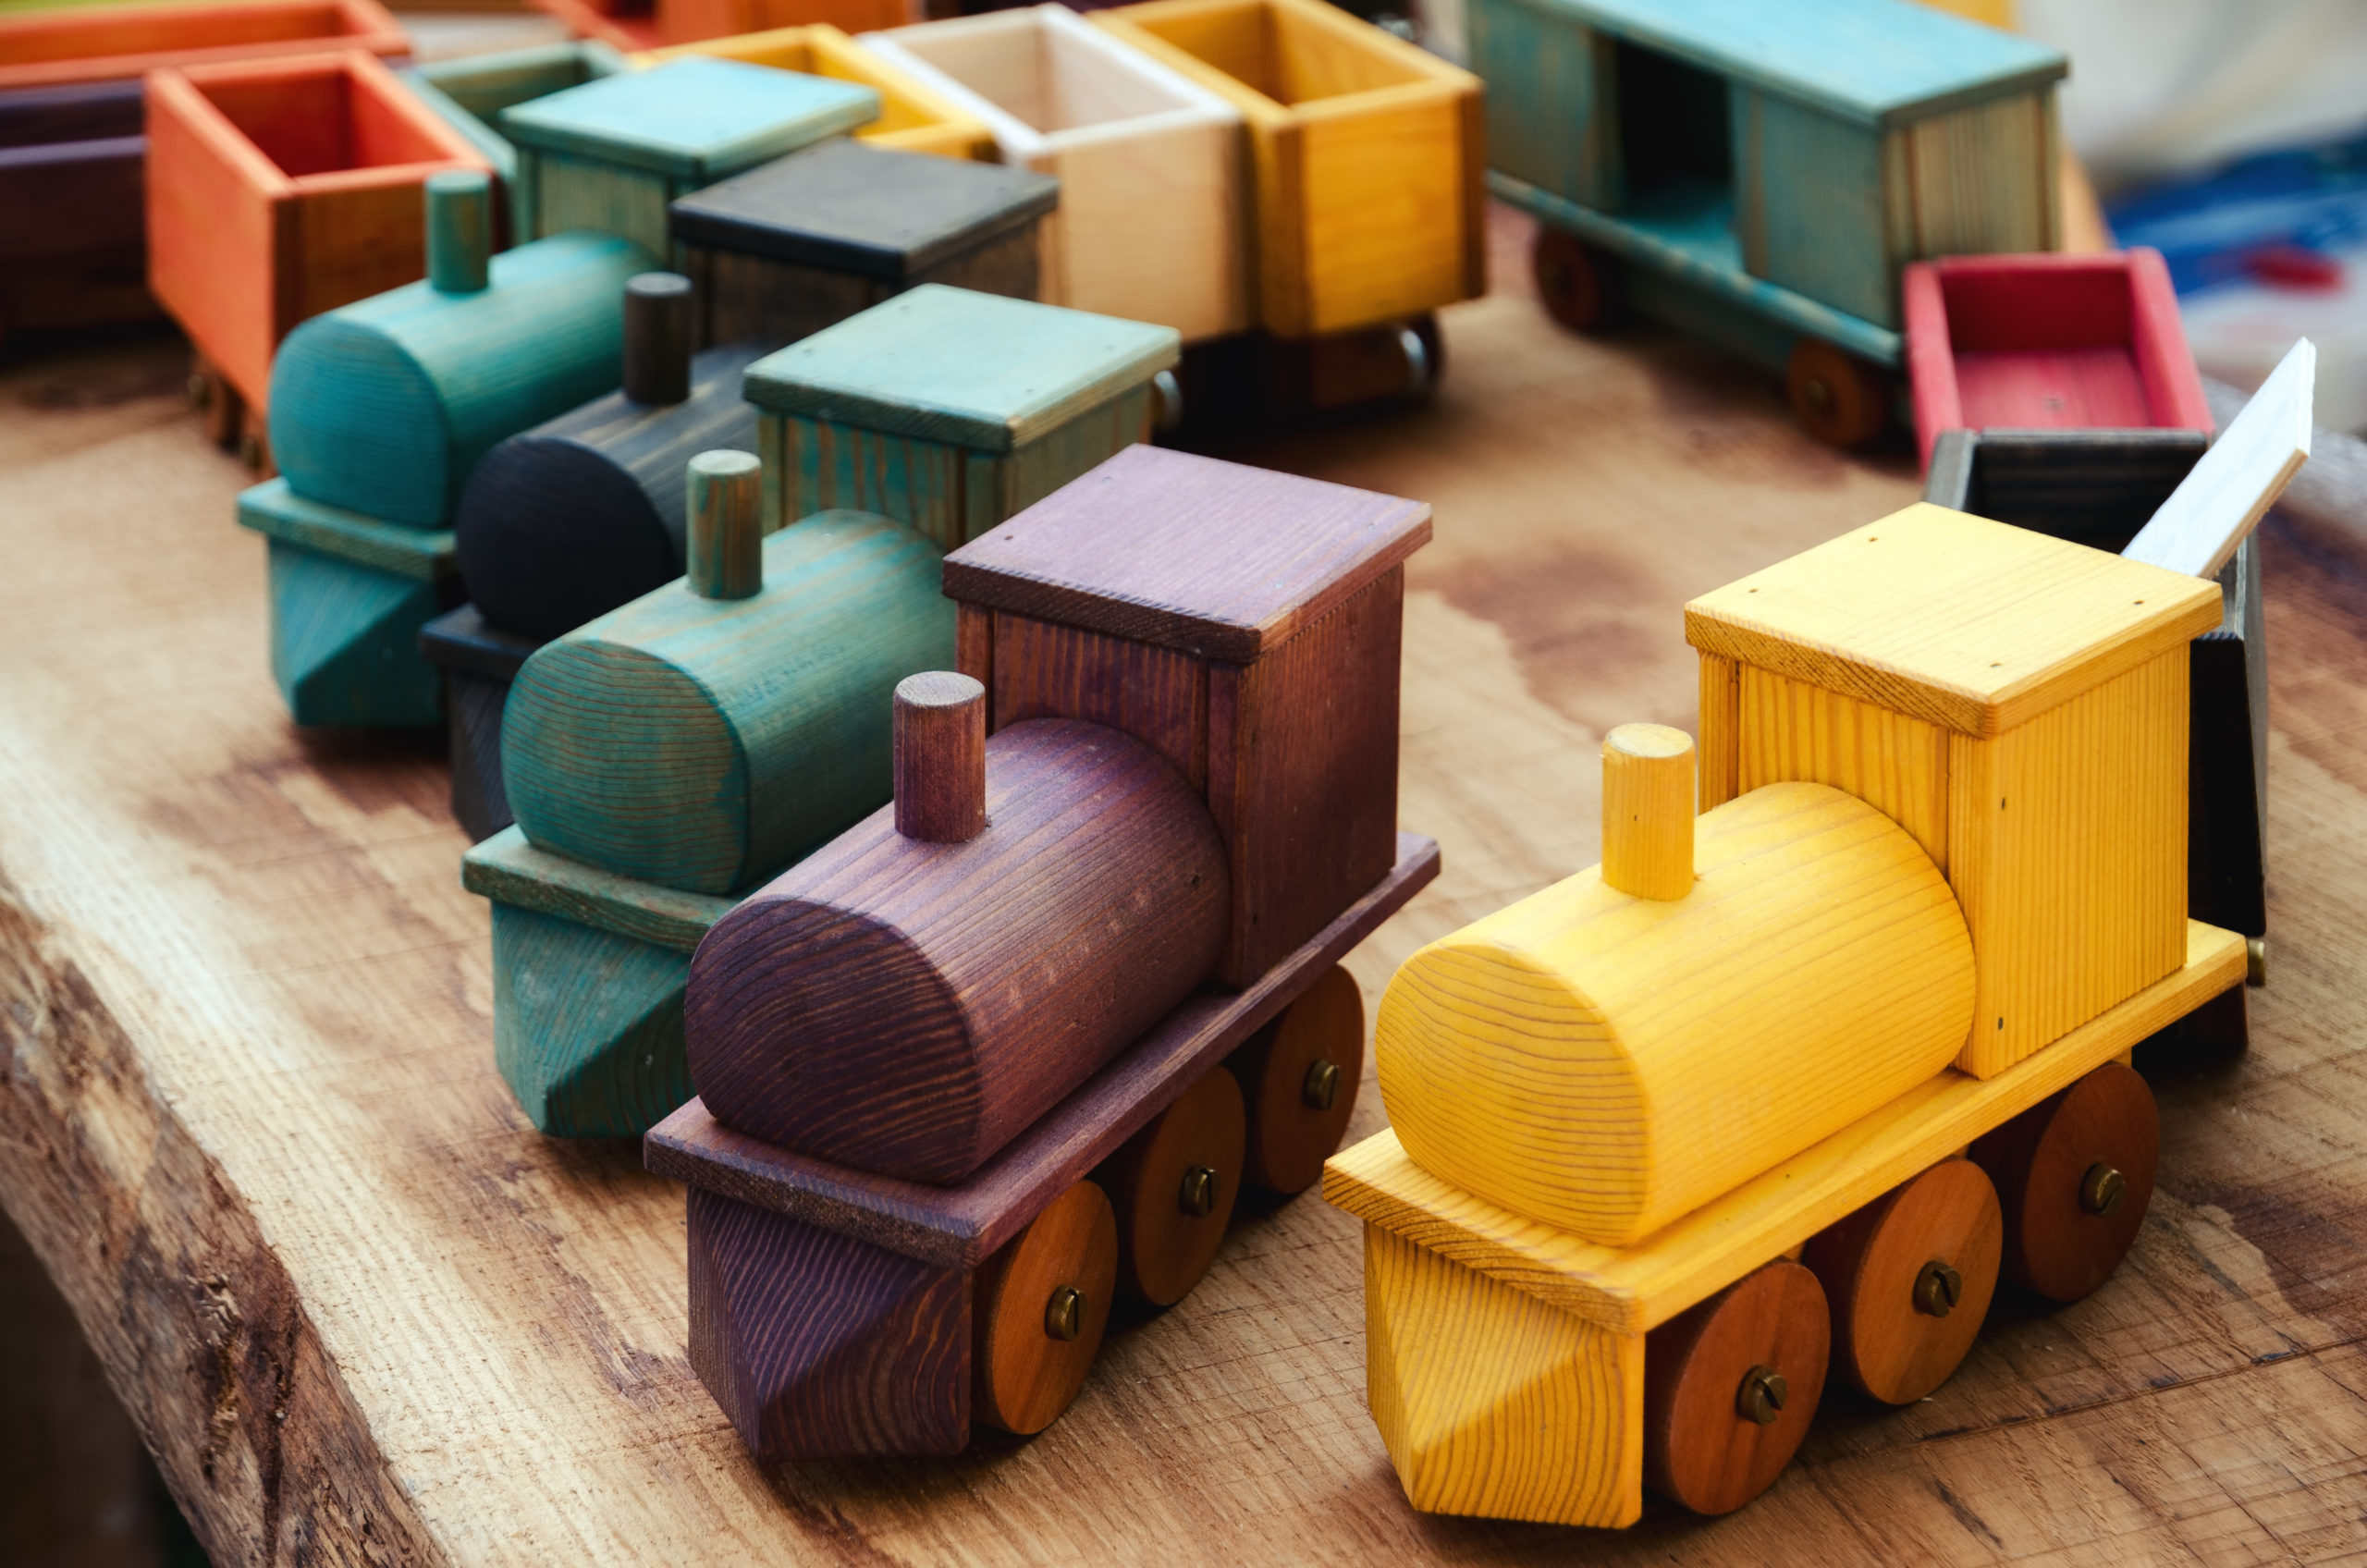 Many wooden train toys on a wood table